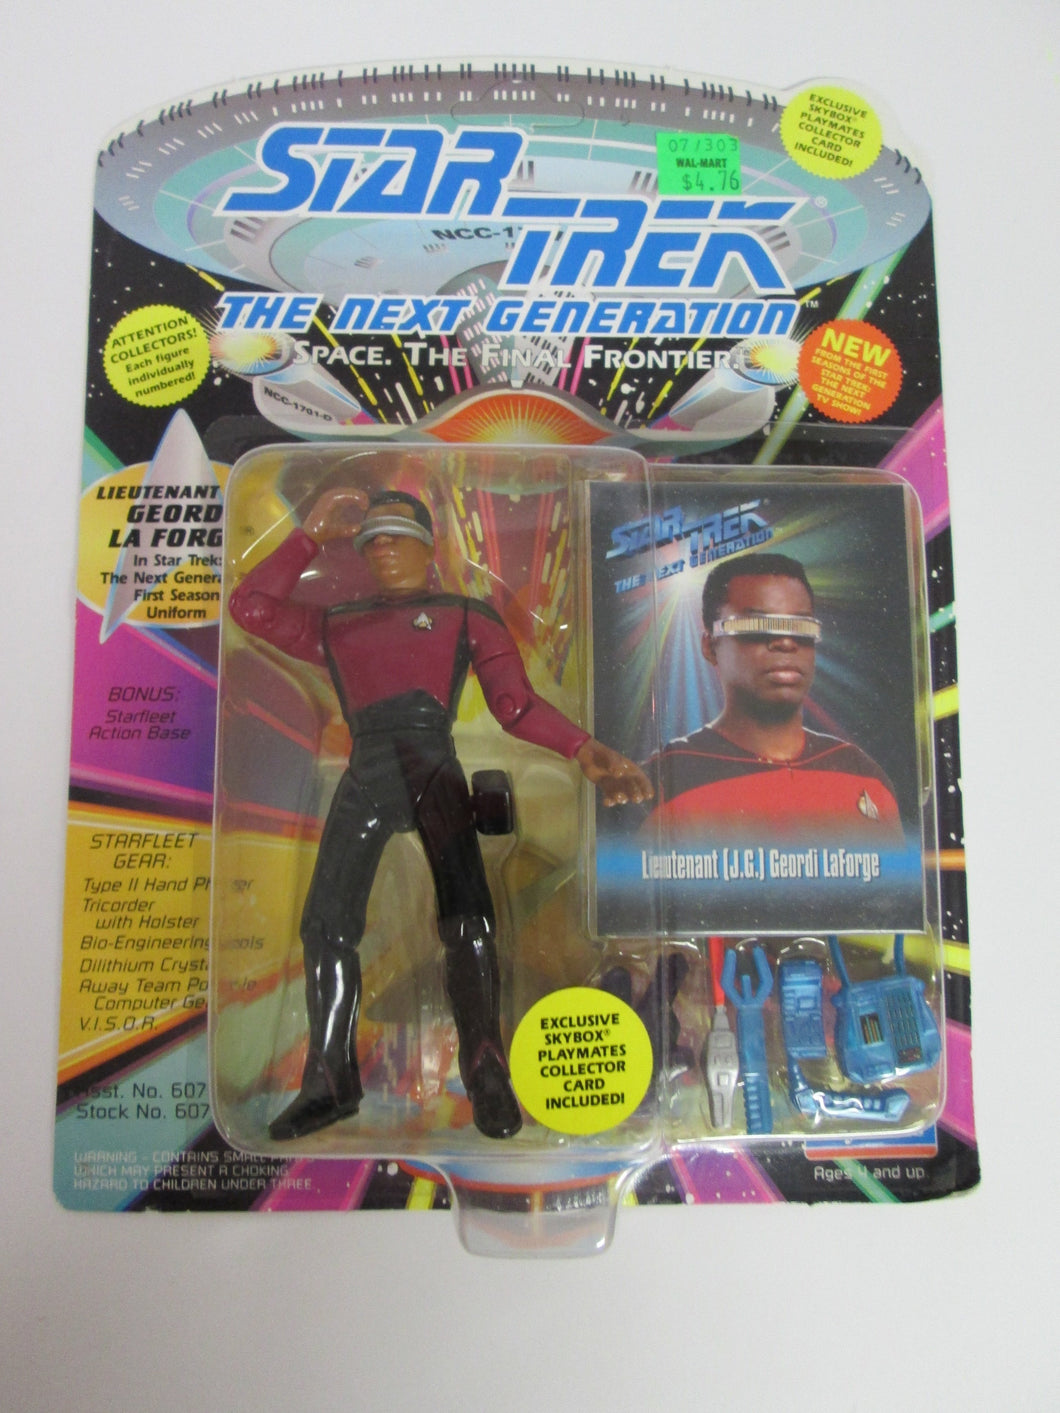 Star Trek TNG Lieutenant Commander Geordi La Forge First Season Uniform Action Figure